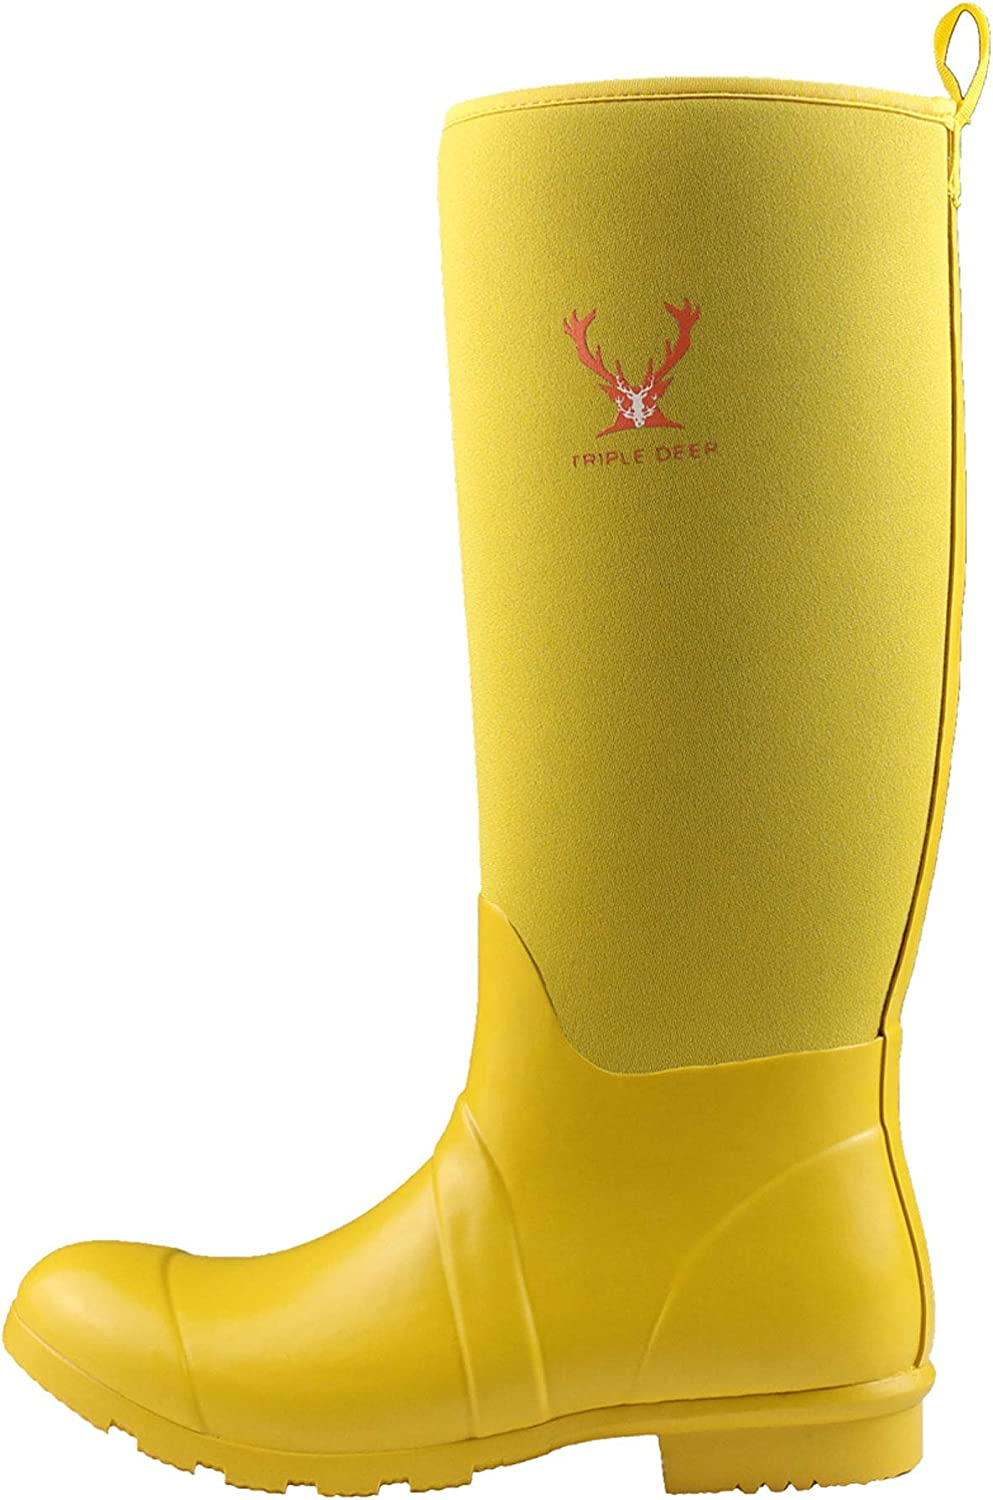 Own shoes Waterproof Rain Boots Rubber High Knee for Women Rainy Day